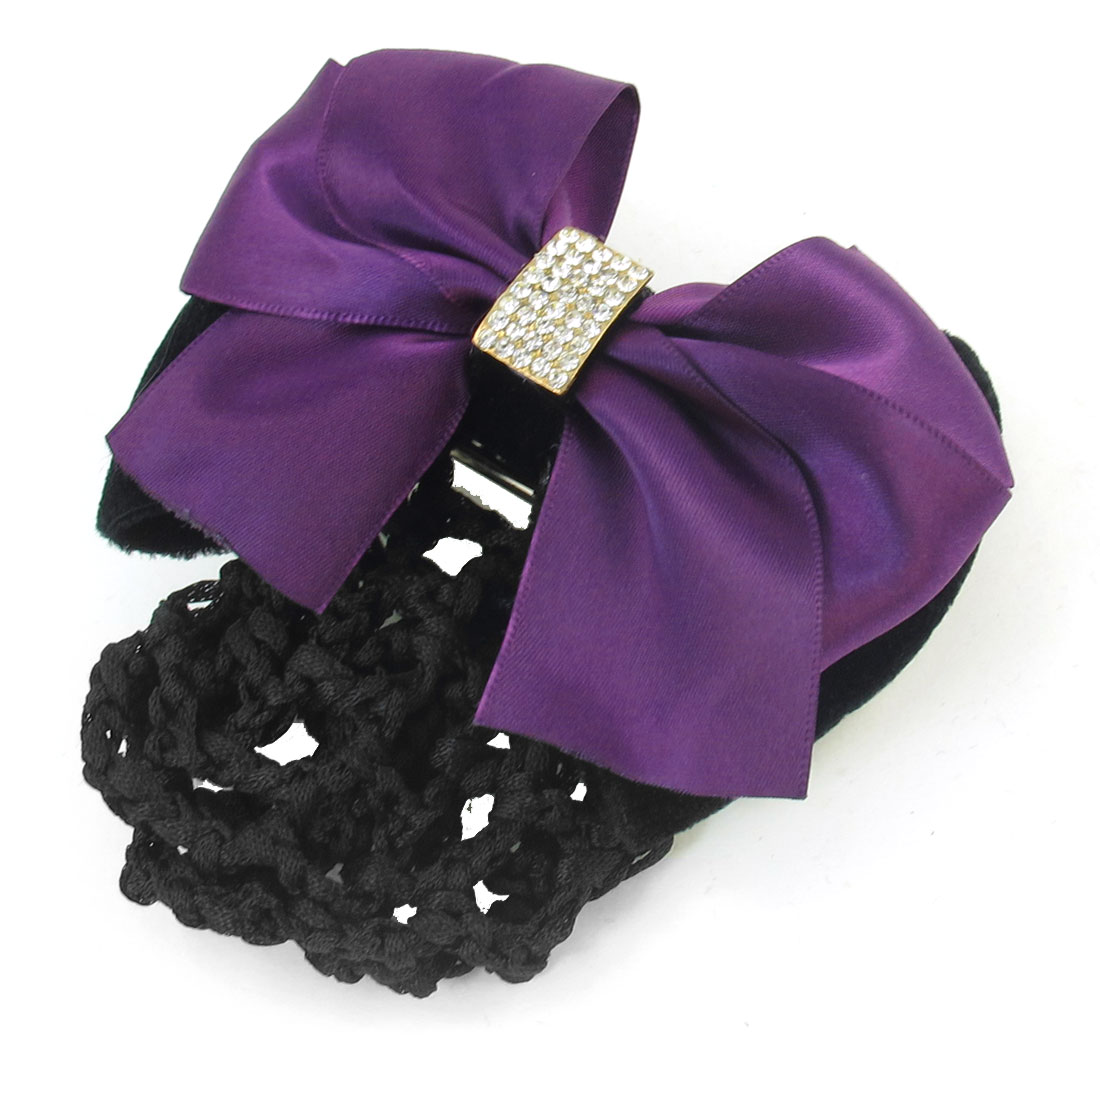 Lady Glitter Rhinestones Bowknot Detail Barrette Snood Net Hair Clip